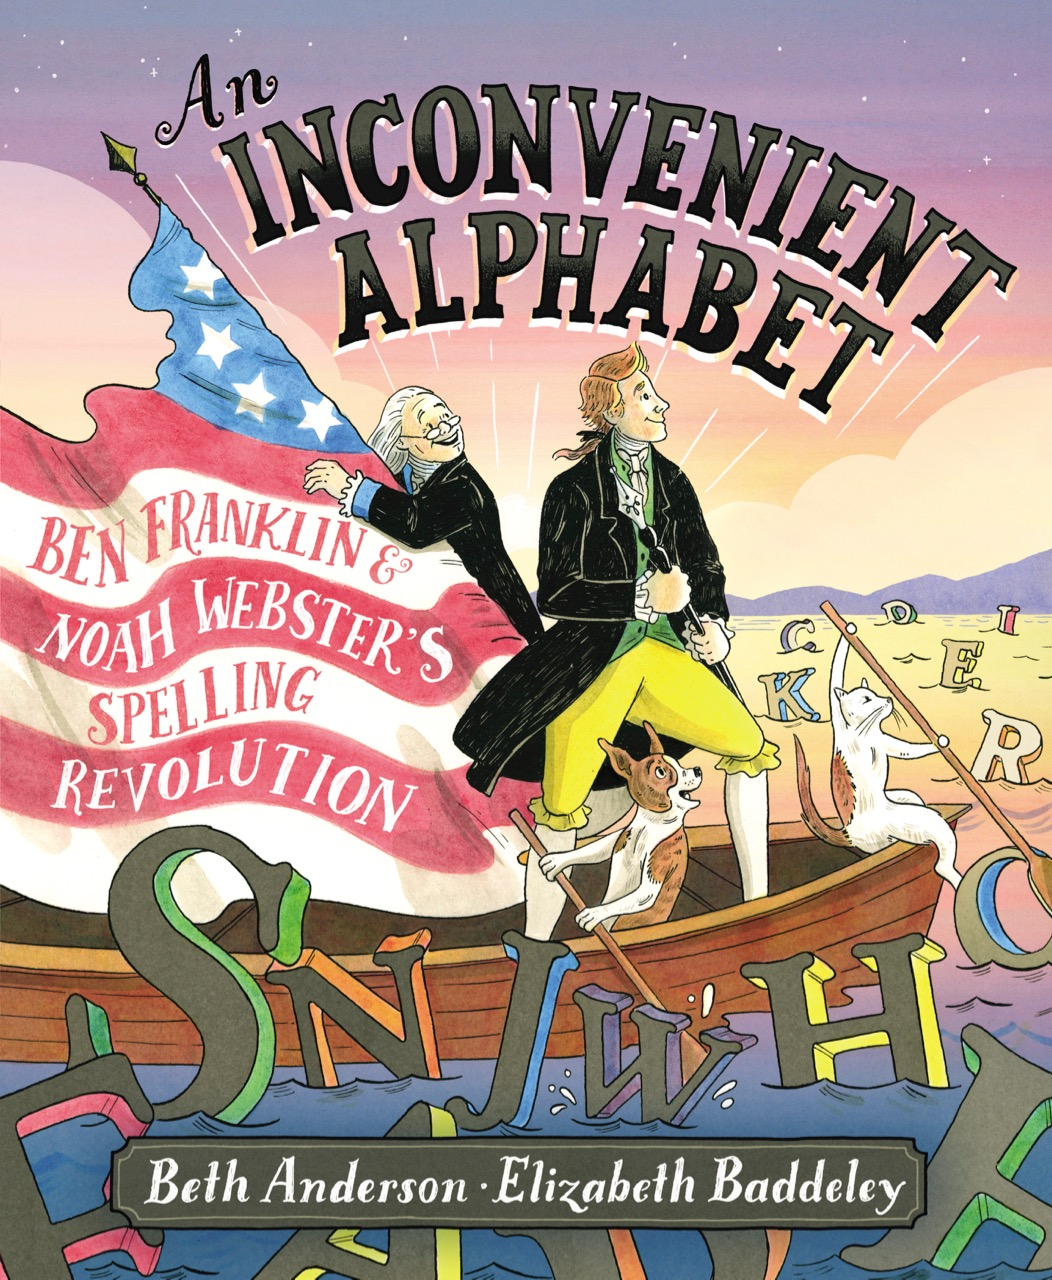 An Inconvenient Alphabet: Ben Franklin & Noah Webster's Spelling Revolution  written by Beth Anderson, Illustrated by Elizabeth Baddeley